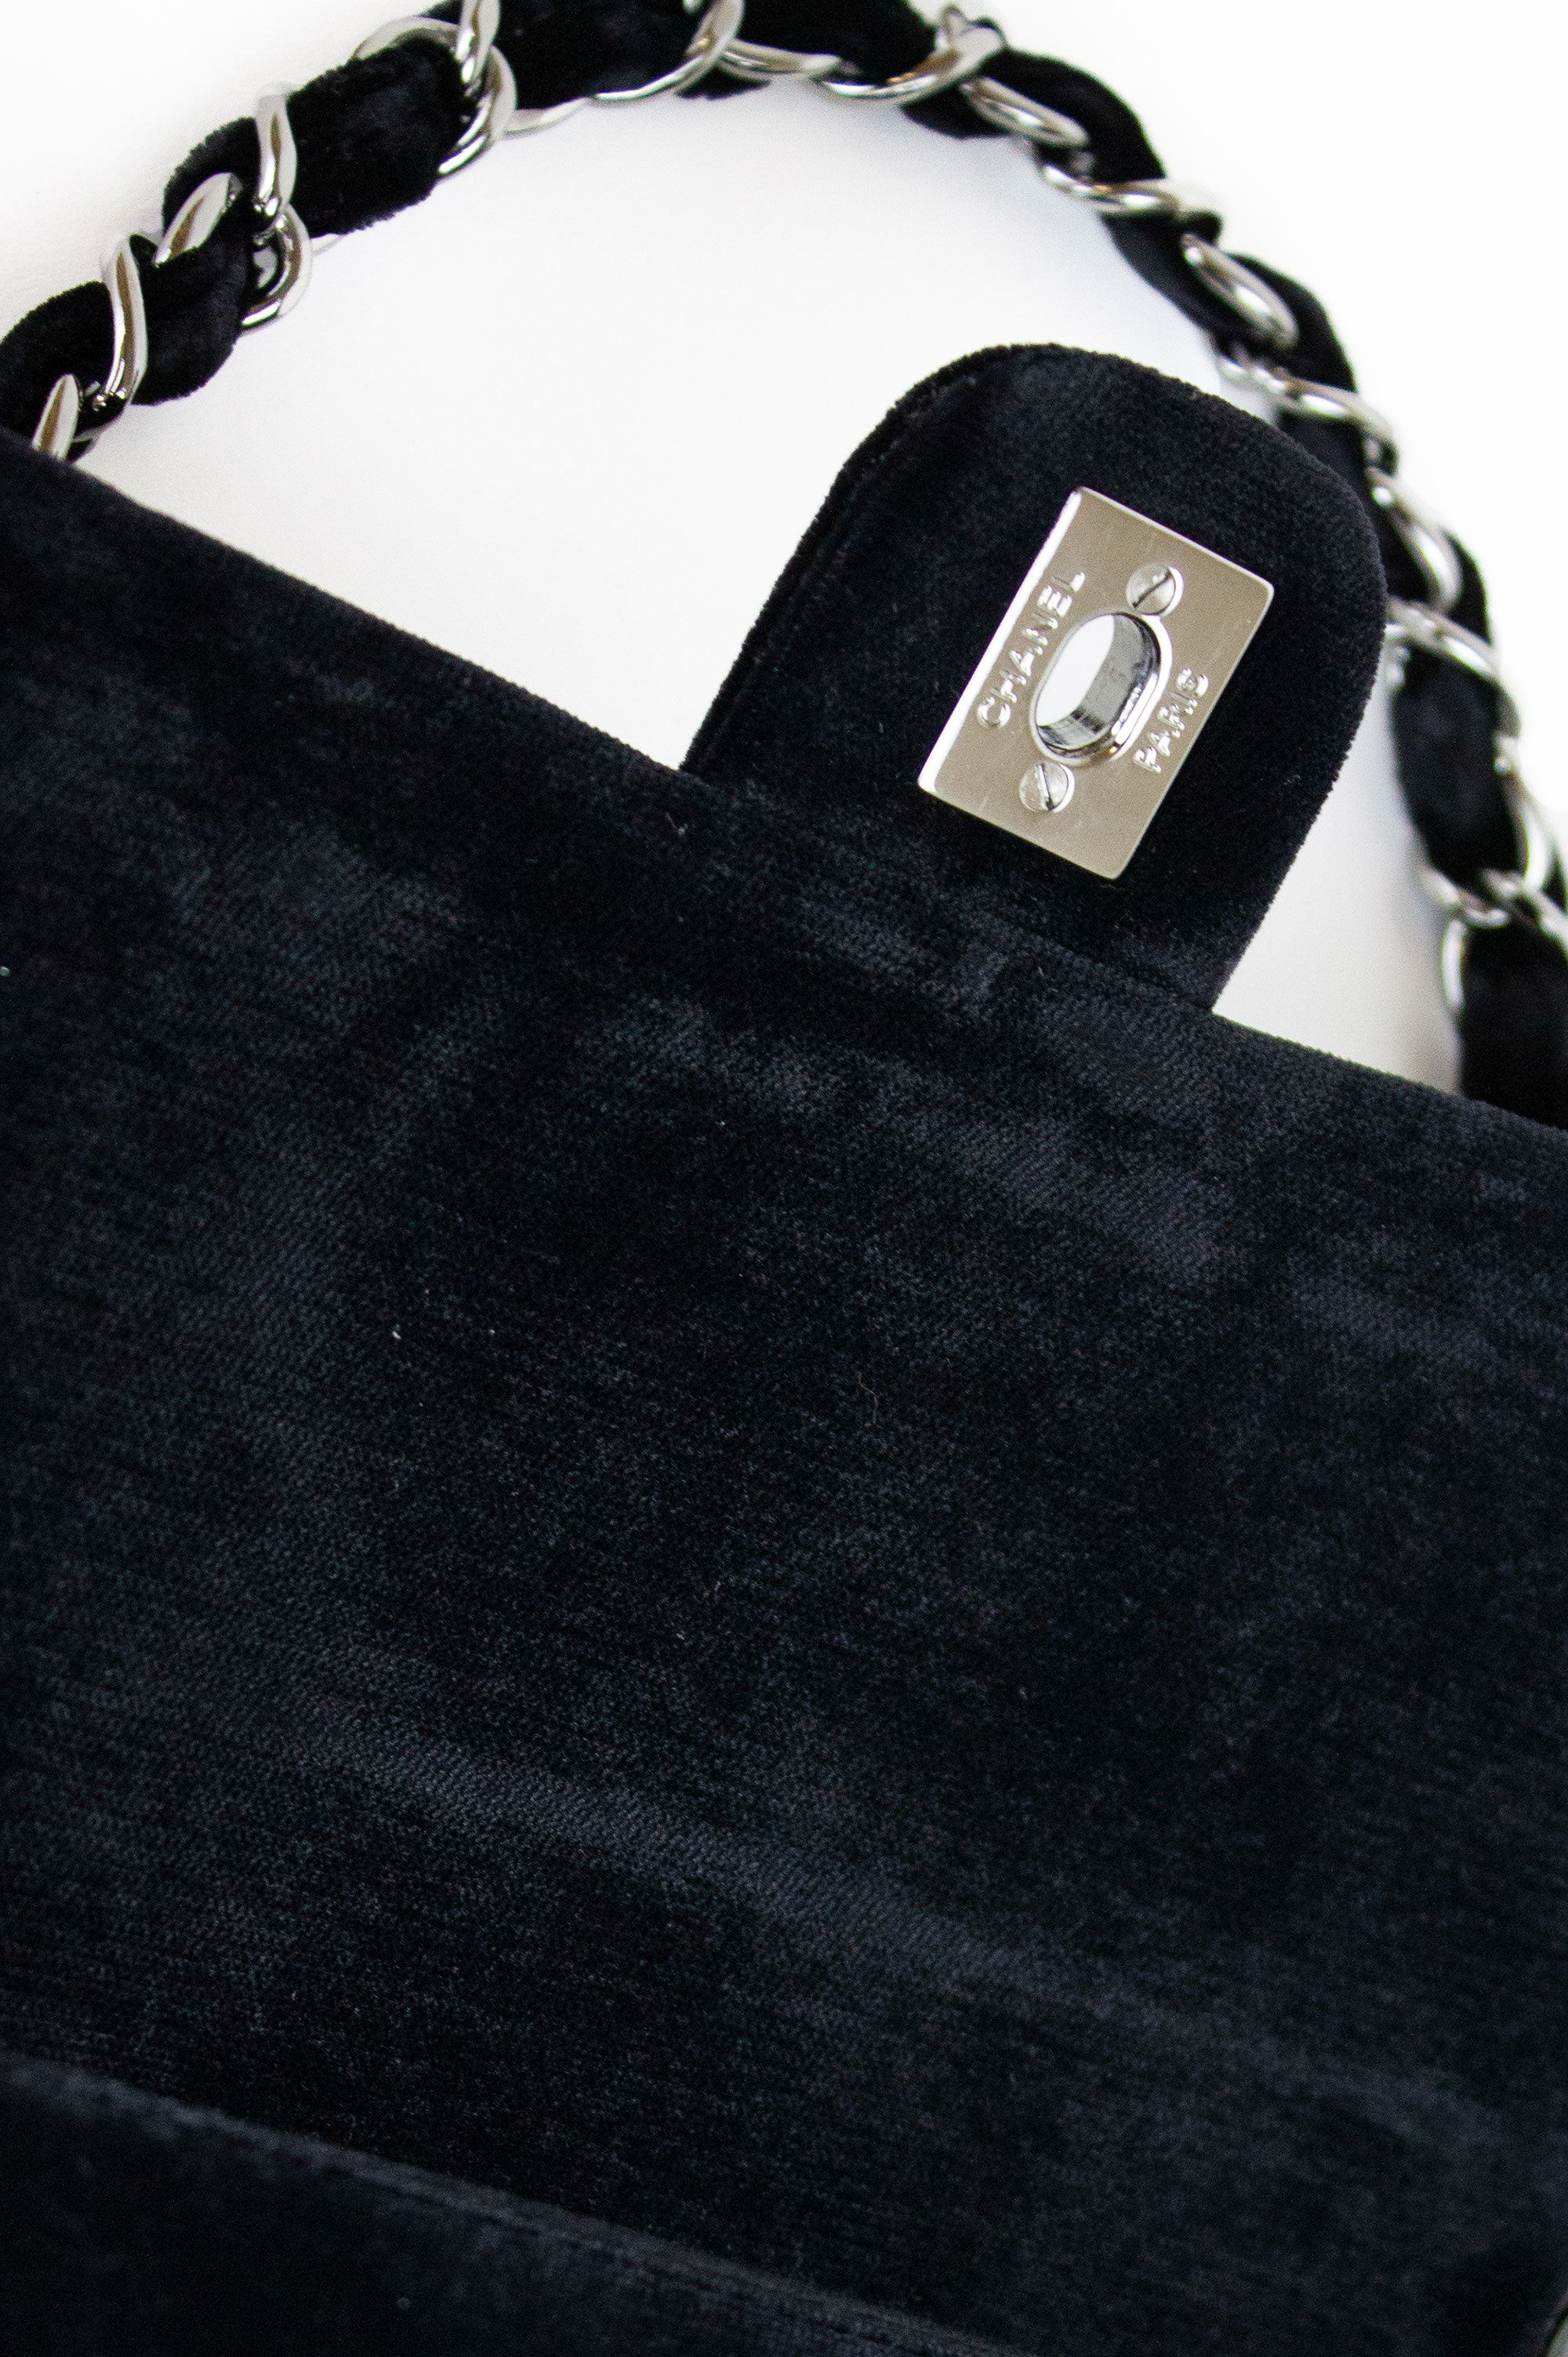 CHANEL Special Edition Velvet Flap Bag